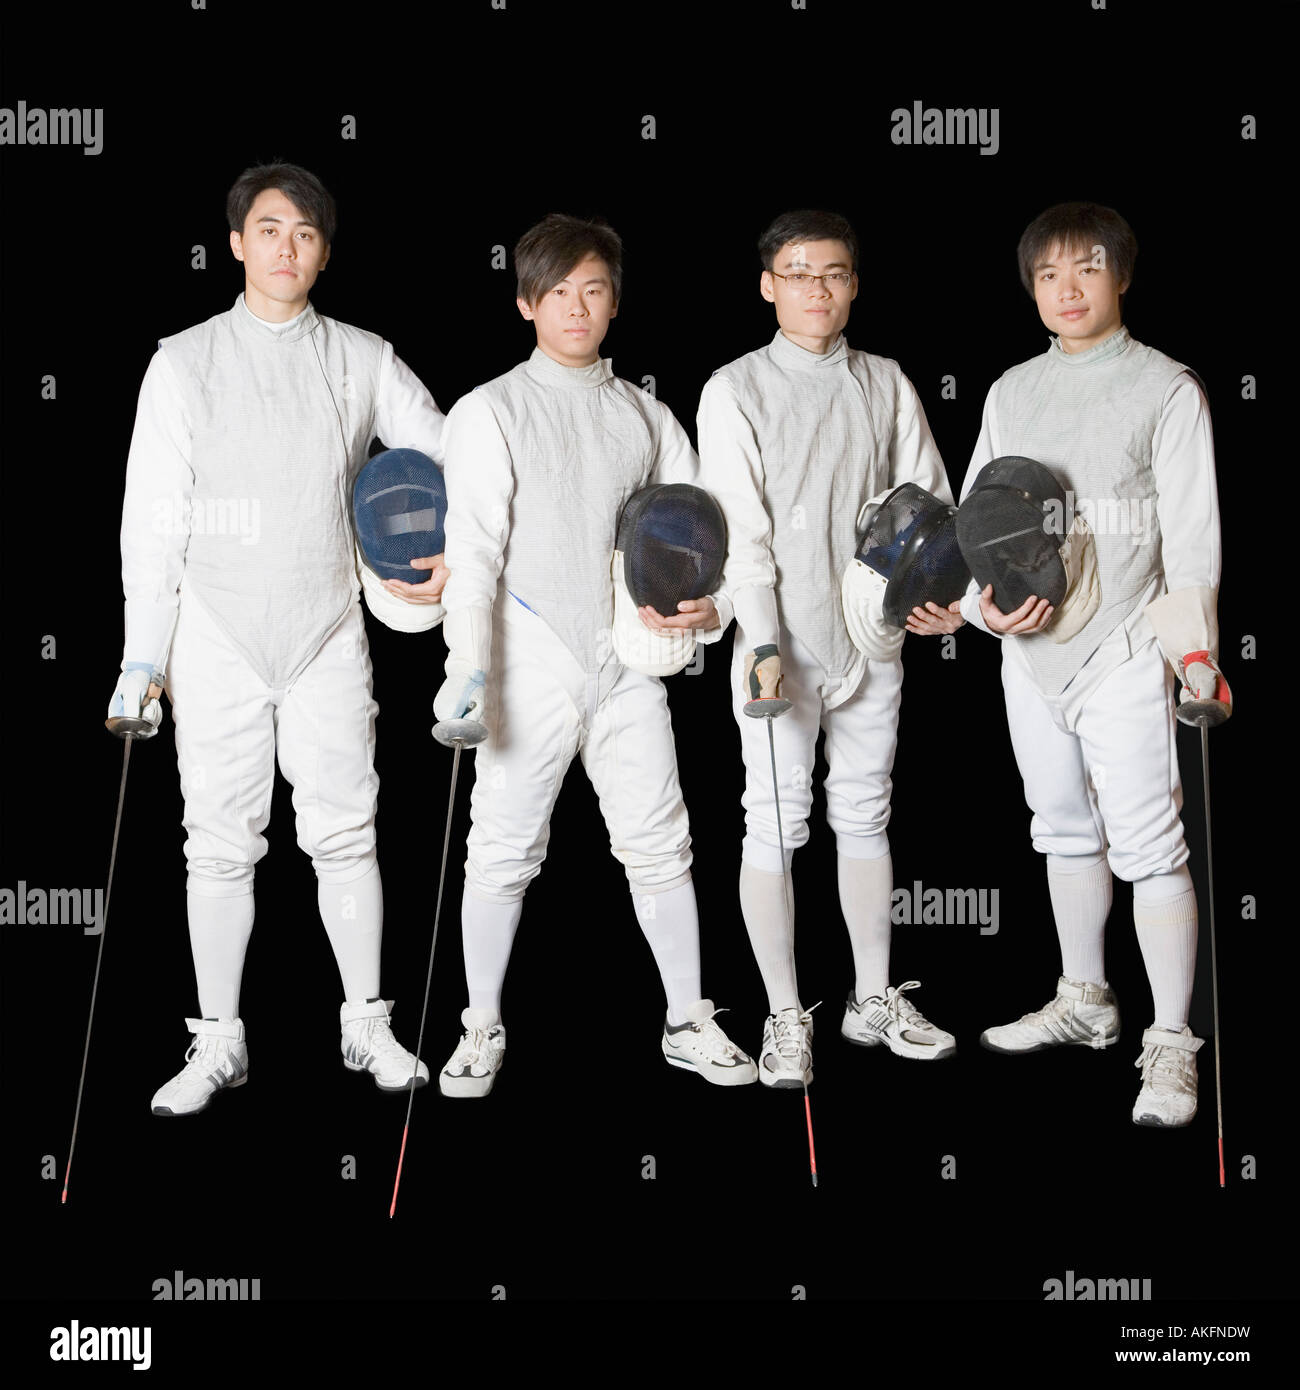 Portrait of four male fencers holding fencing foils and fencing masks - Stock Image